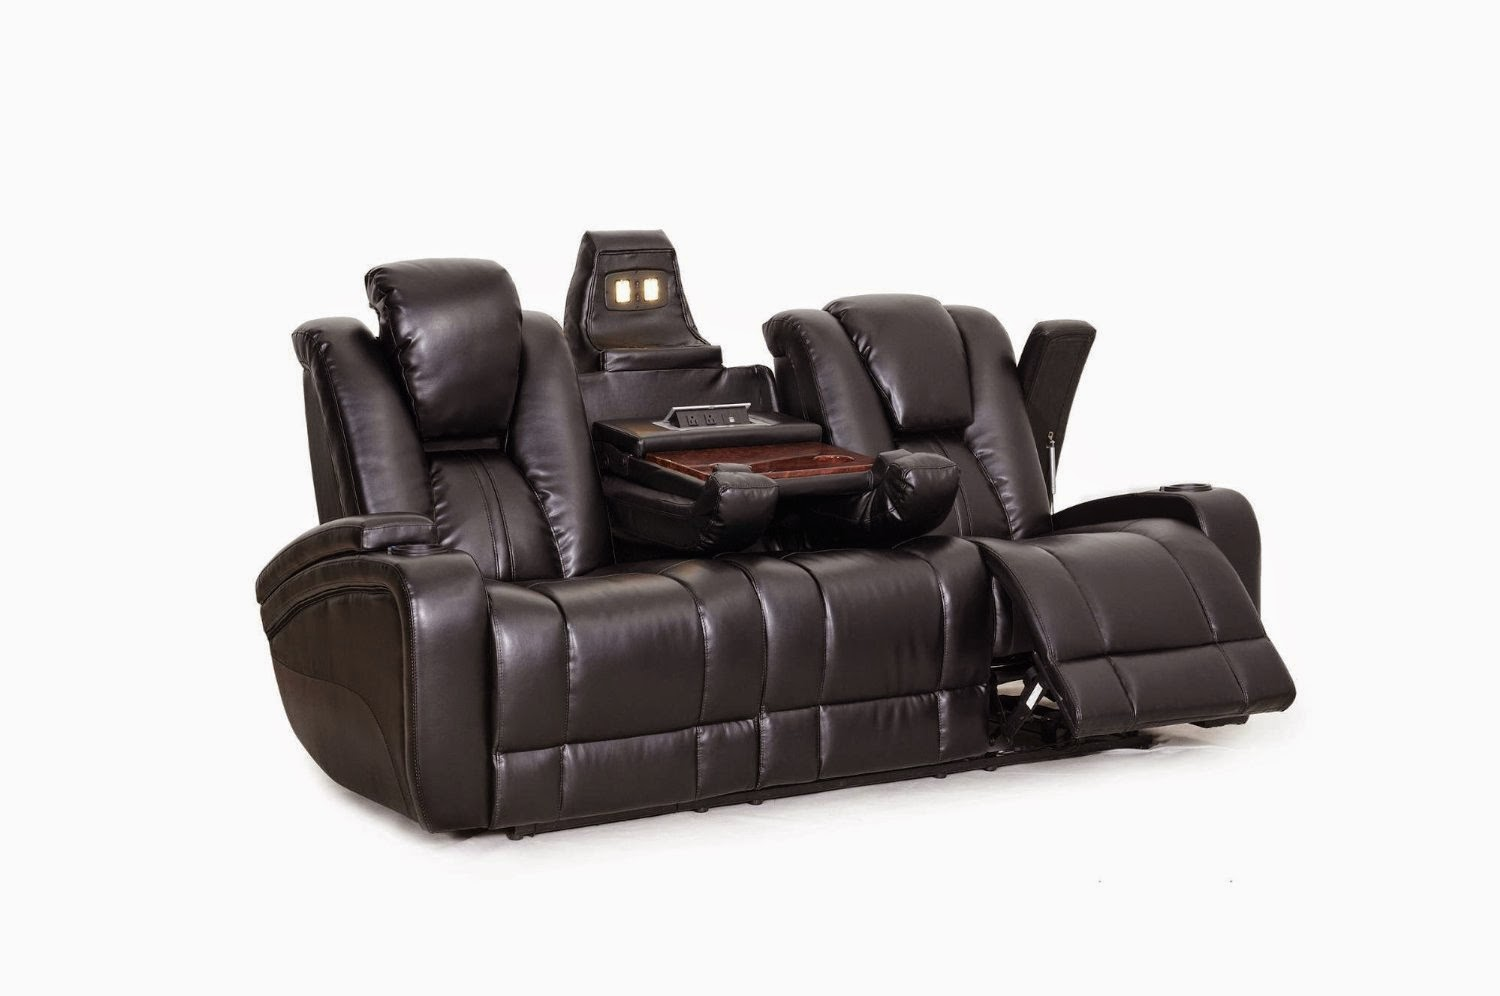 Cheap Recliner Sofas For Sale  sc 1 st  Cheap Recliner Sofas For Sale - blogger & Cheap Recliner Sofas For Sale: Reclining Sofa With Tray Table islam-shia.org